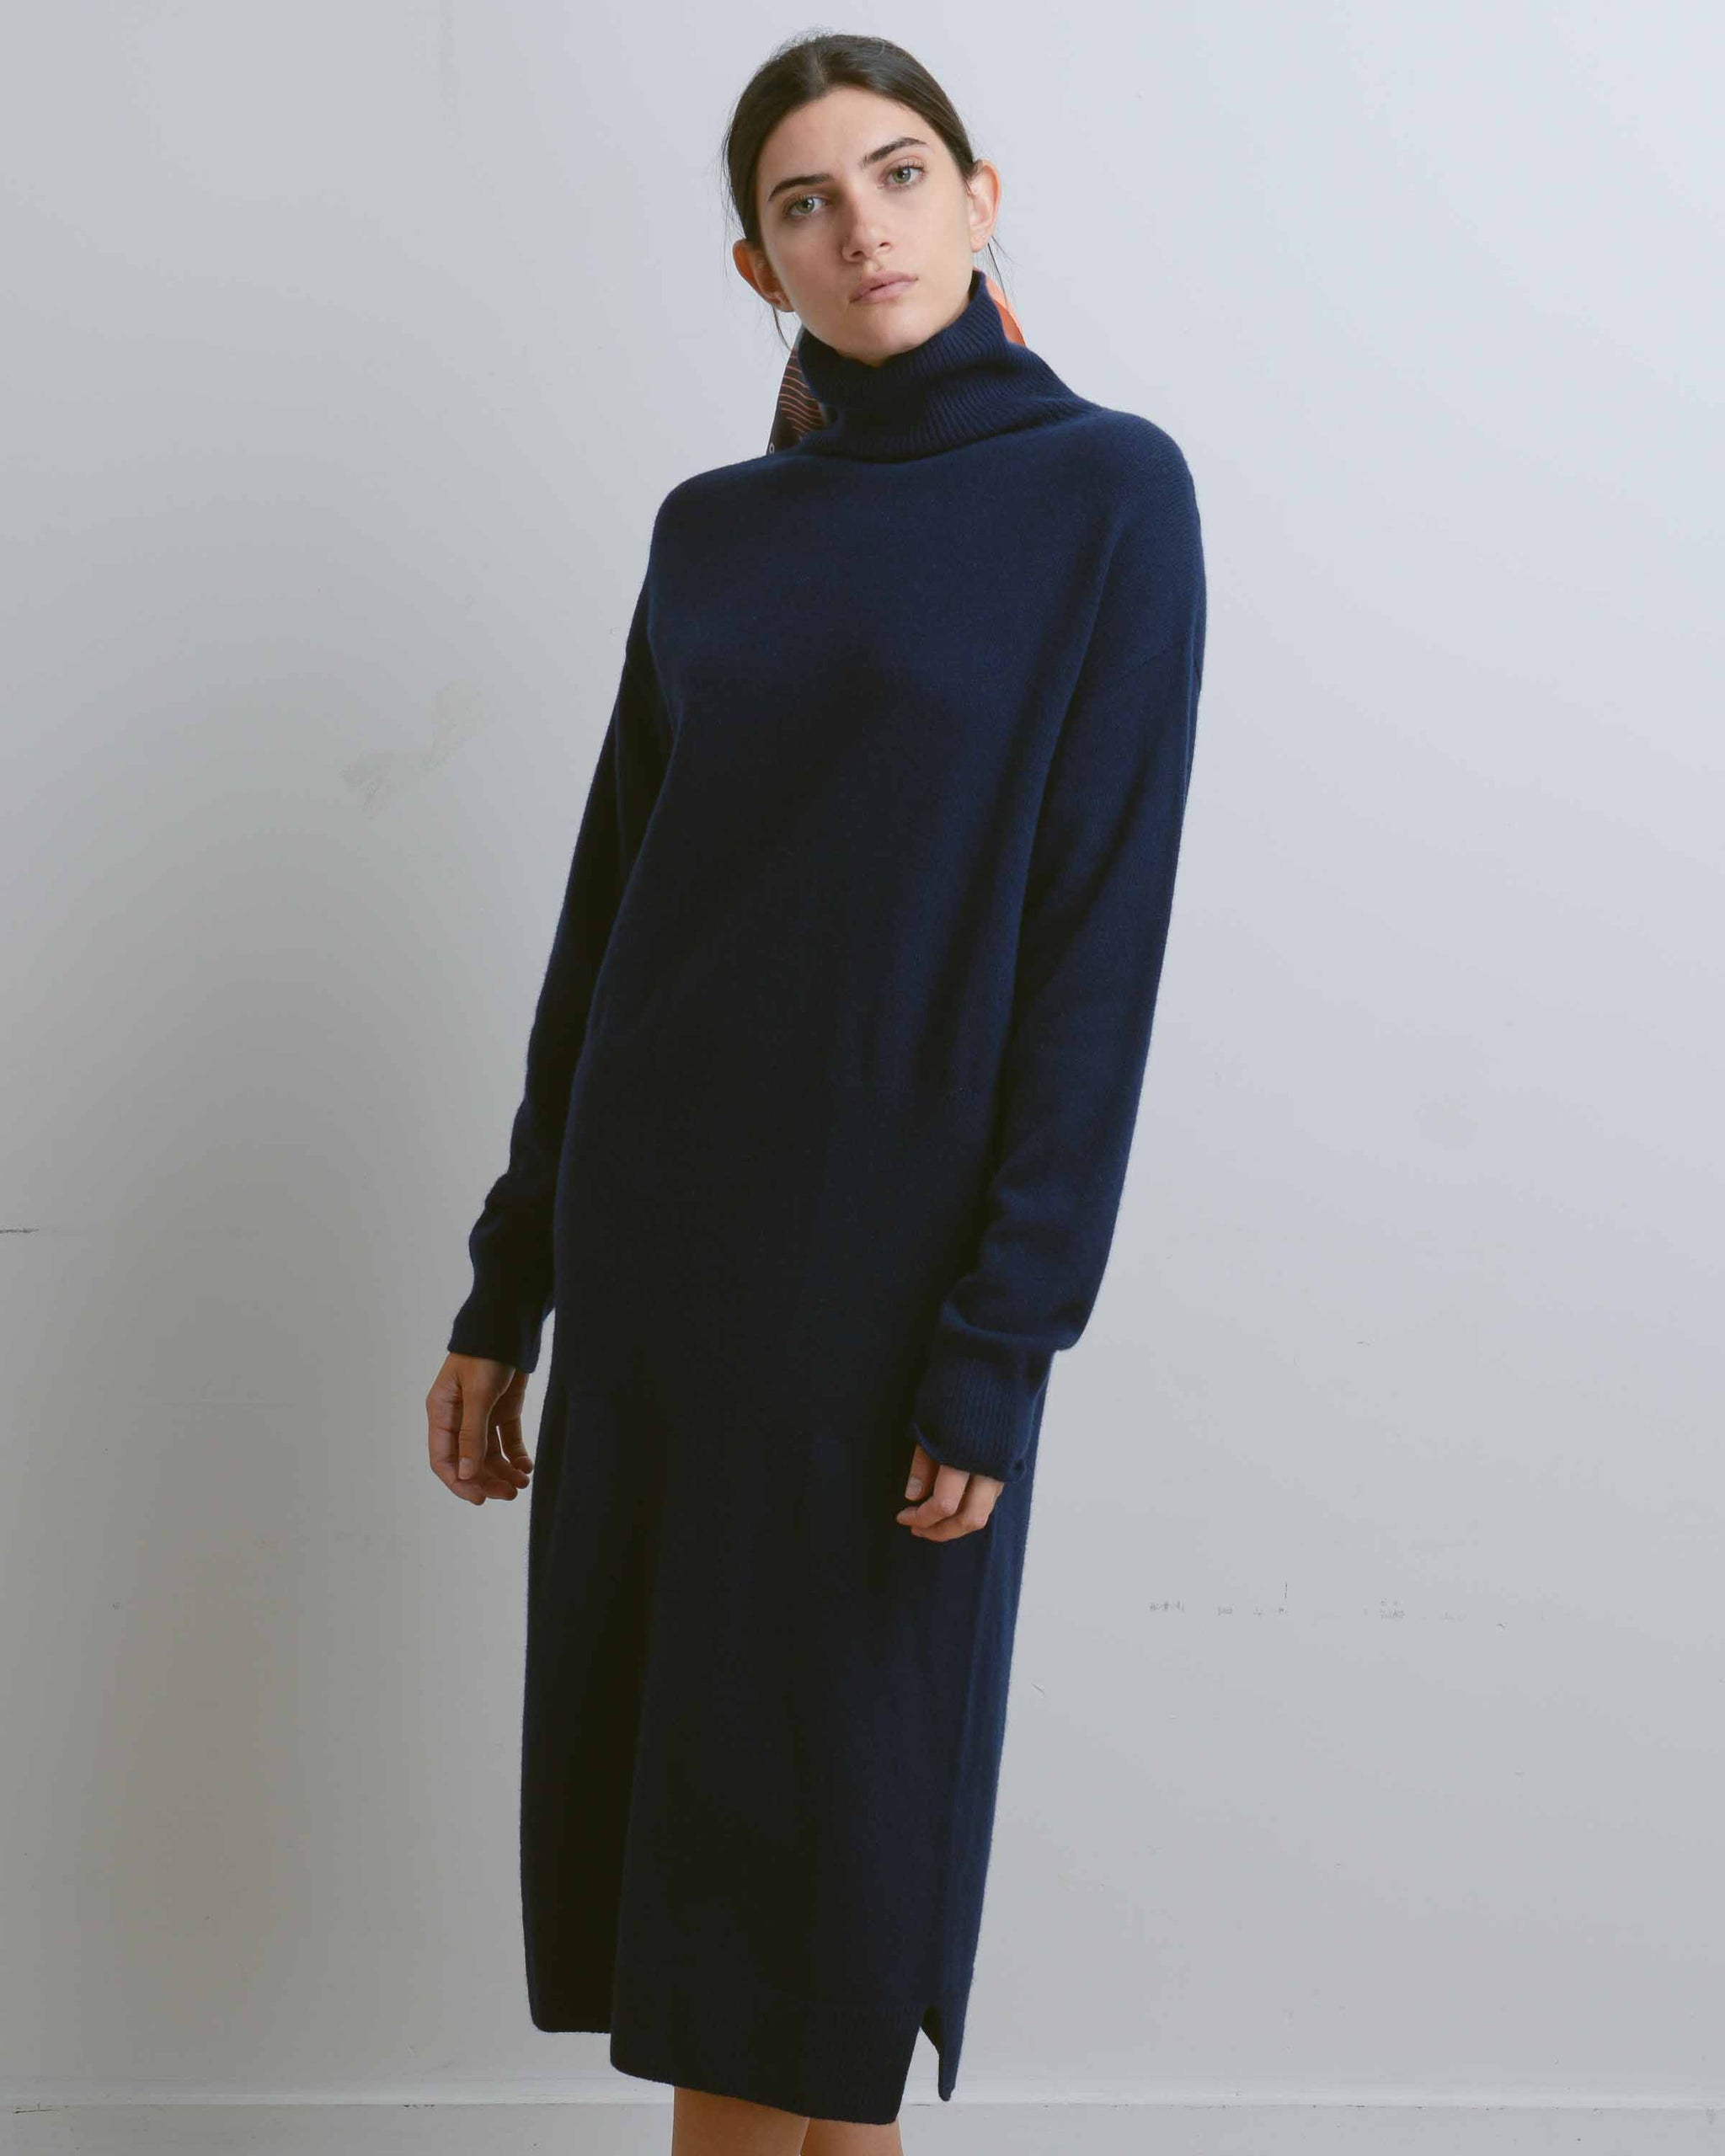 Navy Wholegarment Turtle Neck Knit Dress